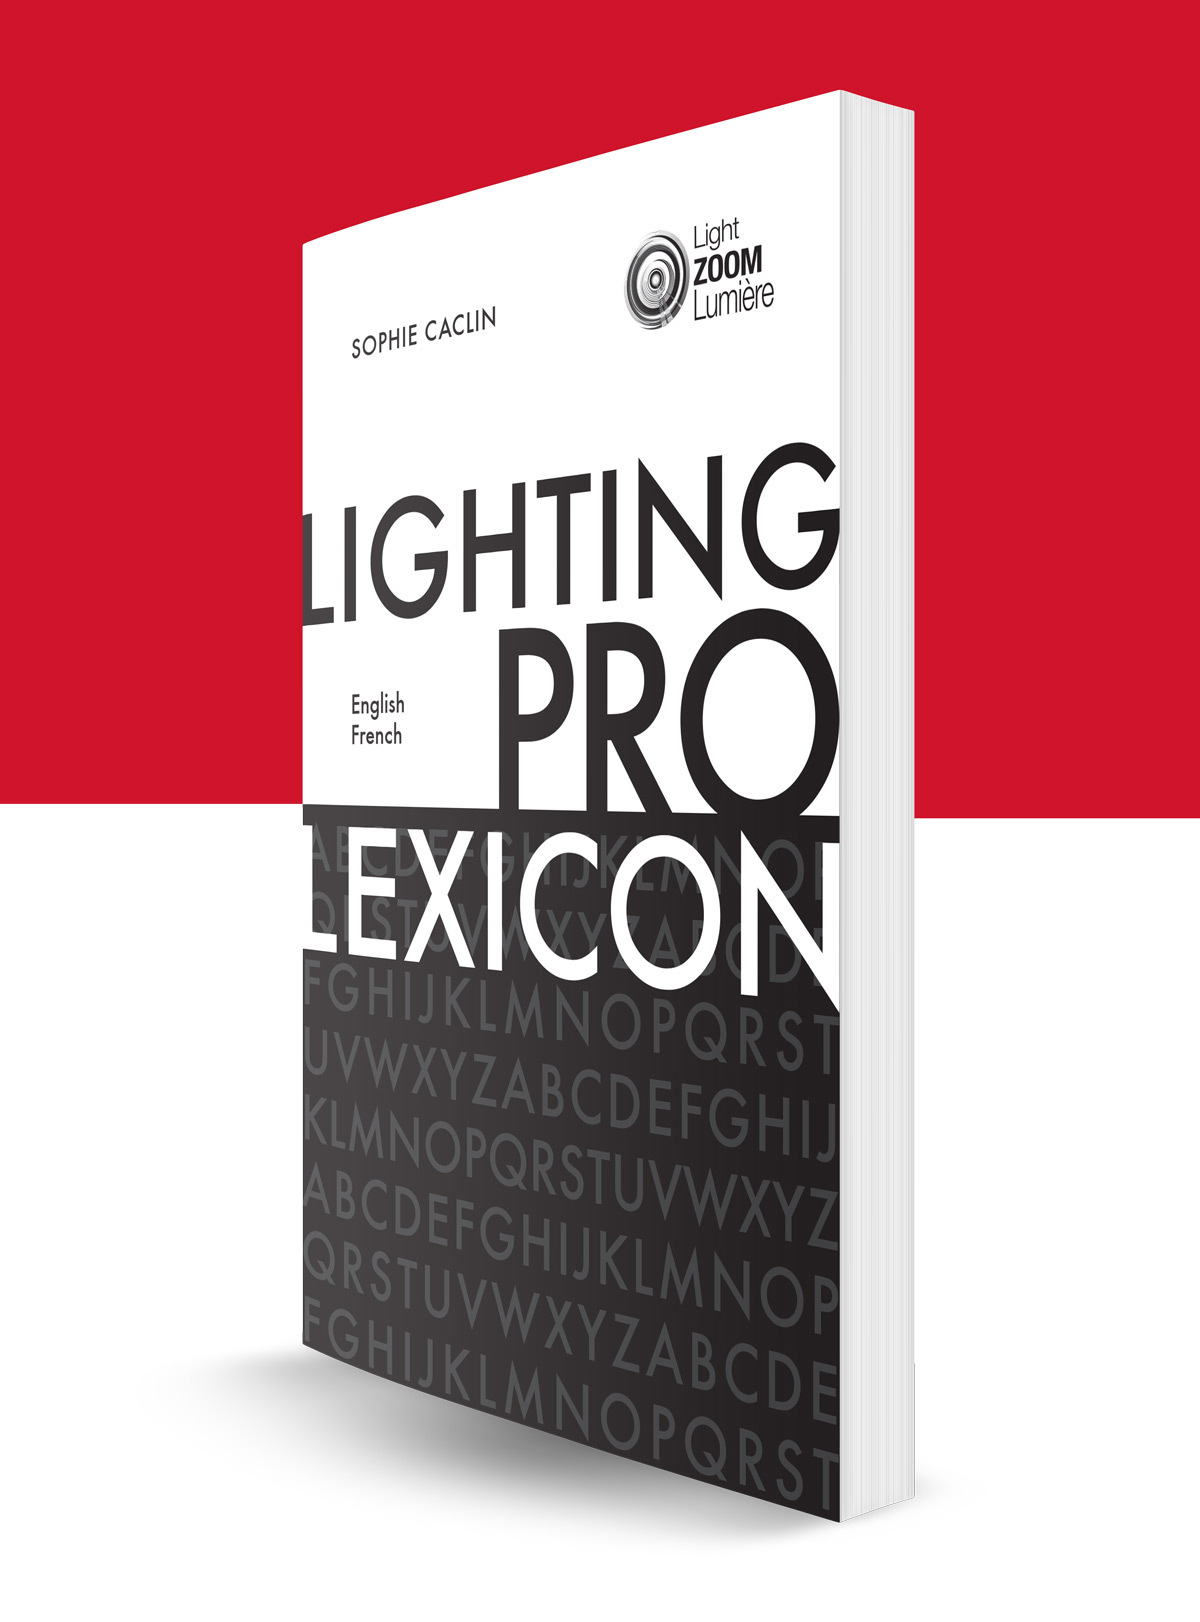 Professional Lighting Lexicon, by Sophie Caclin, back cover - © Light ZOOM Lumière